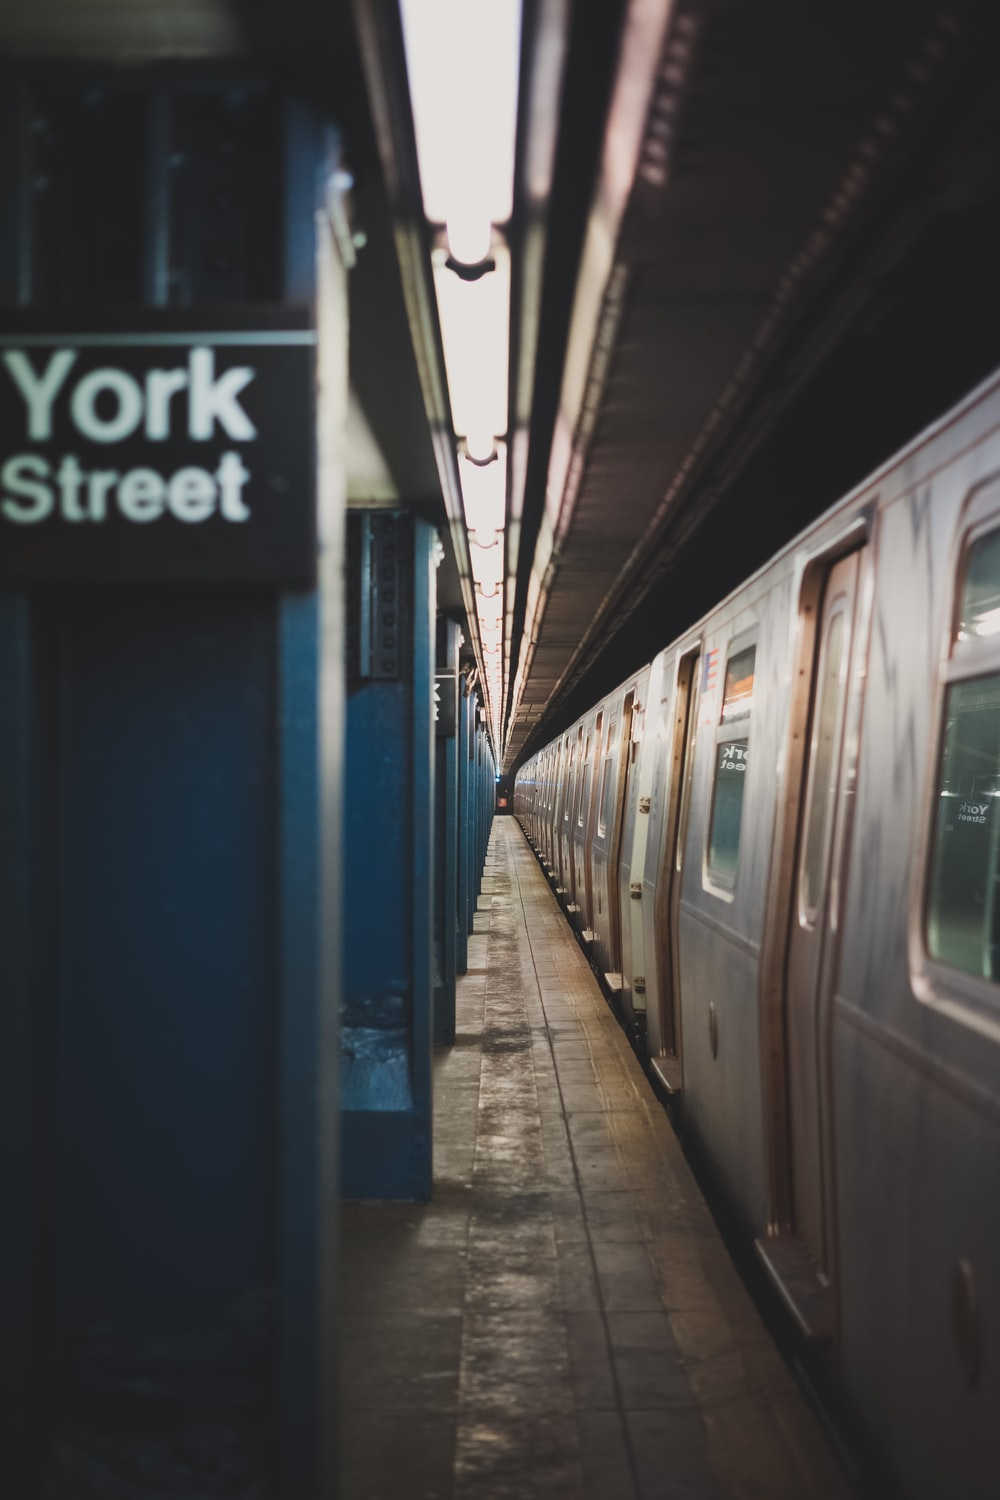 train in York Street terminal